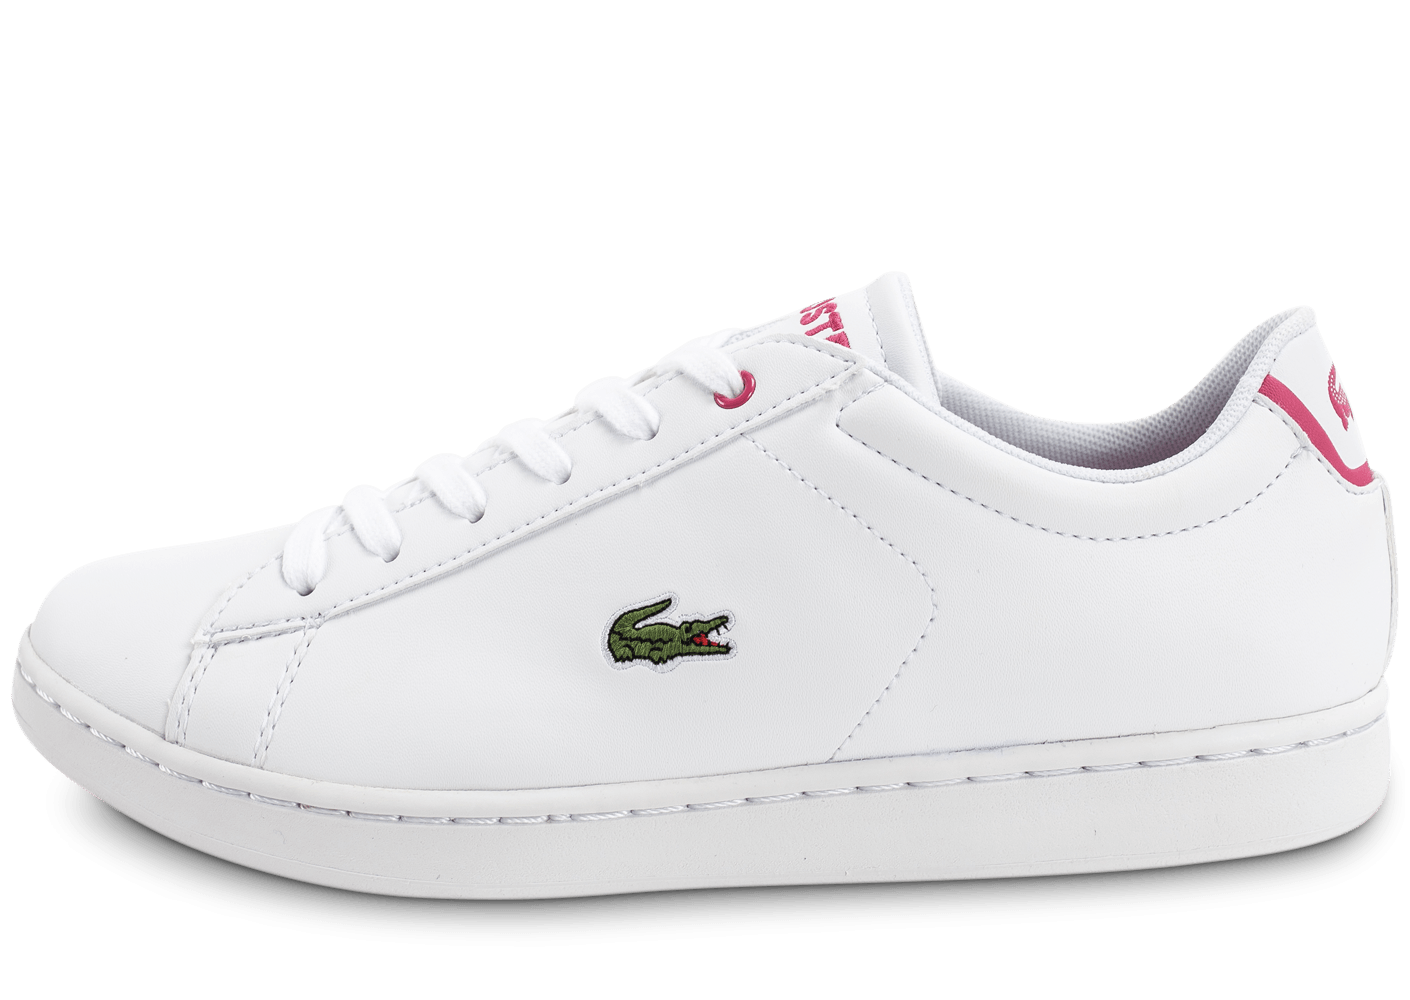 ac466db81f Lacoste Carnaby EVO blanche et rose - Chaussures Enfant - Chausport